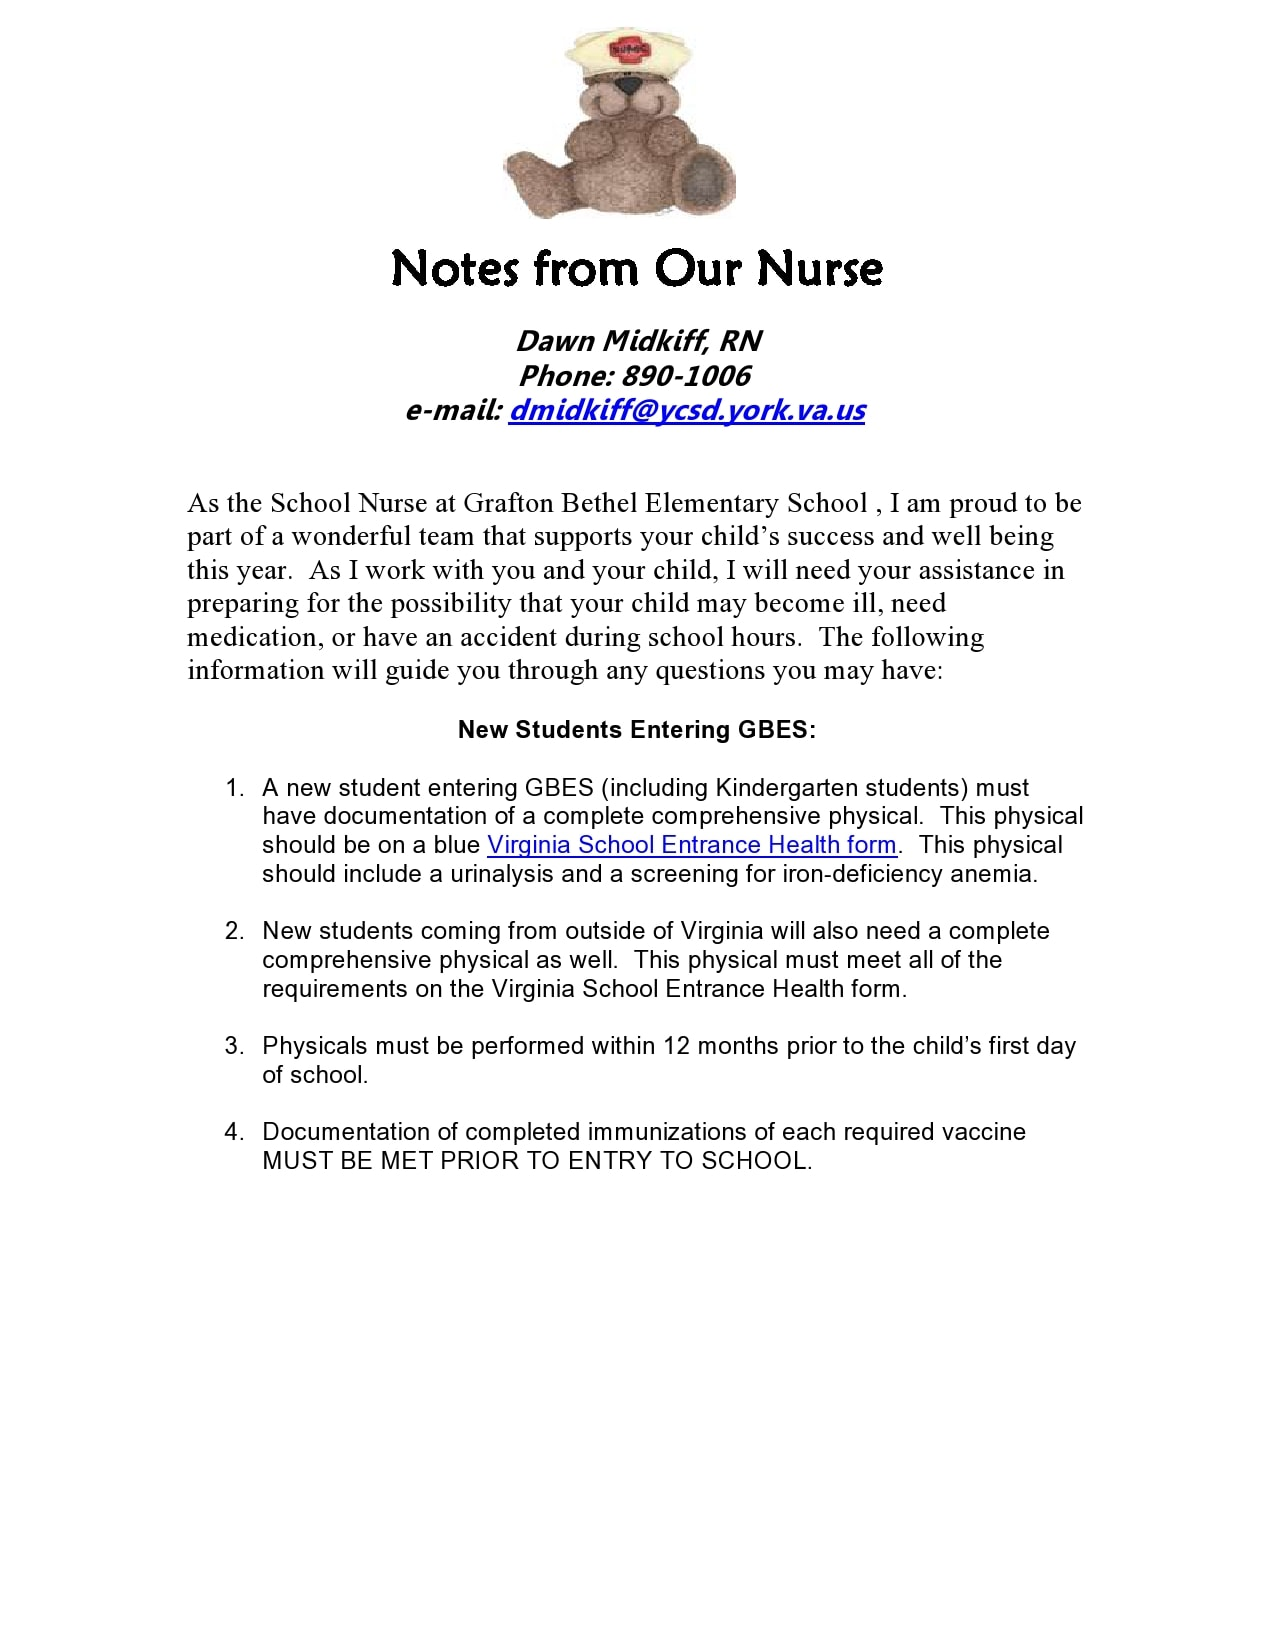 nursing note sample 07